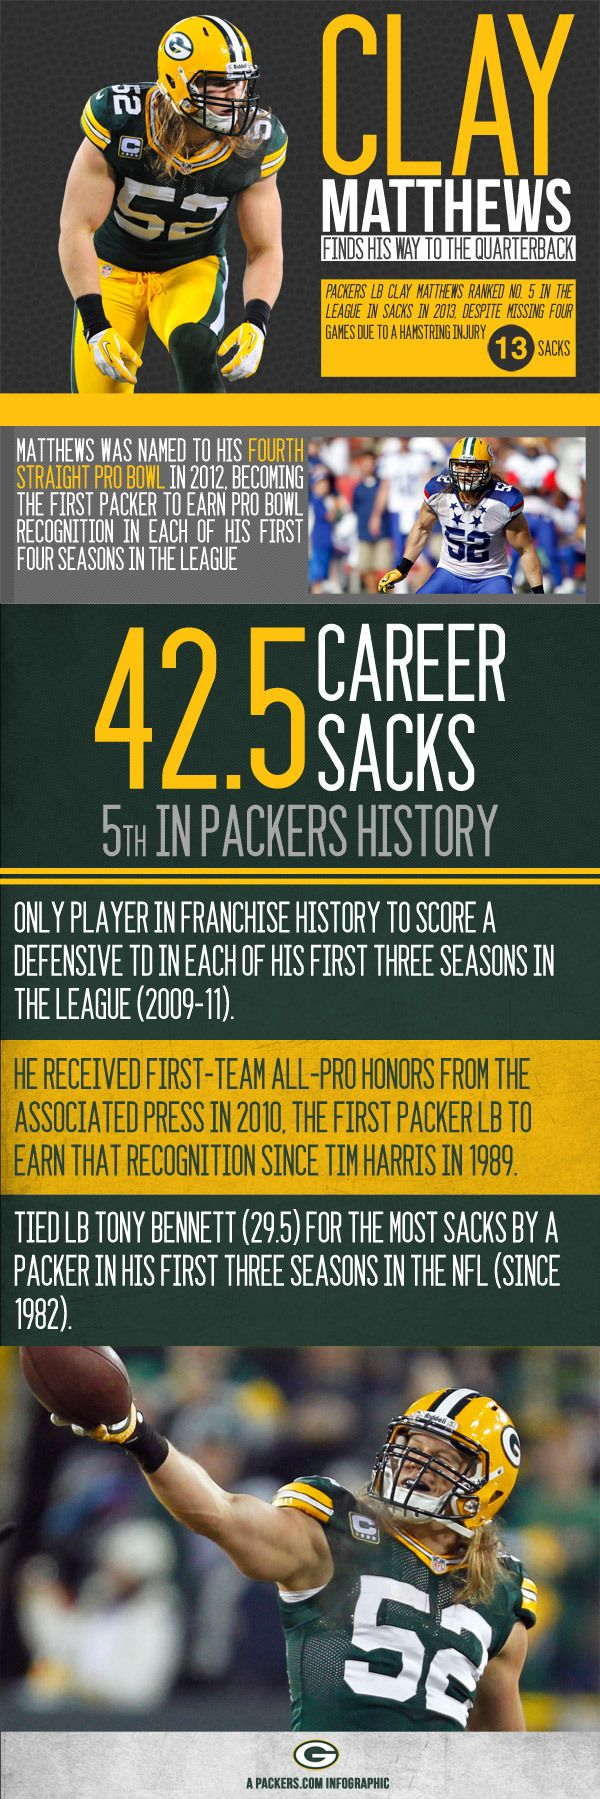 Clay Matthews infographic. He is super fast and zoom to sack. Wow.